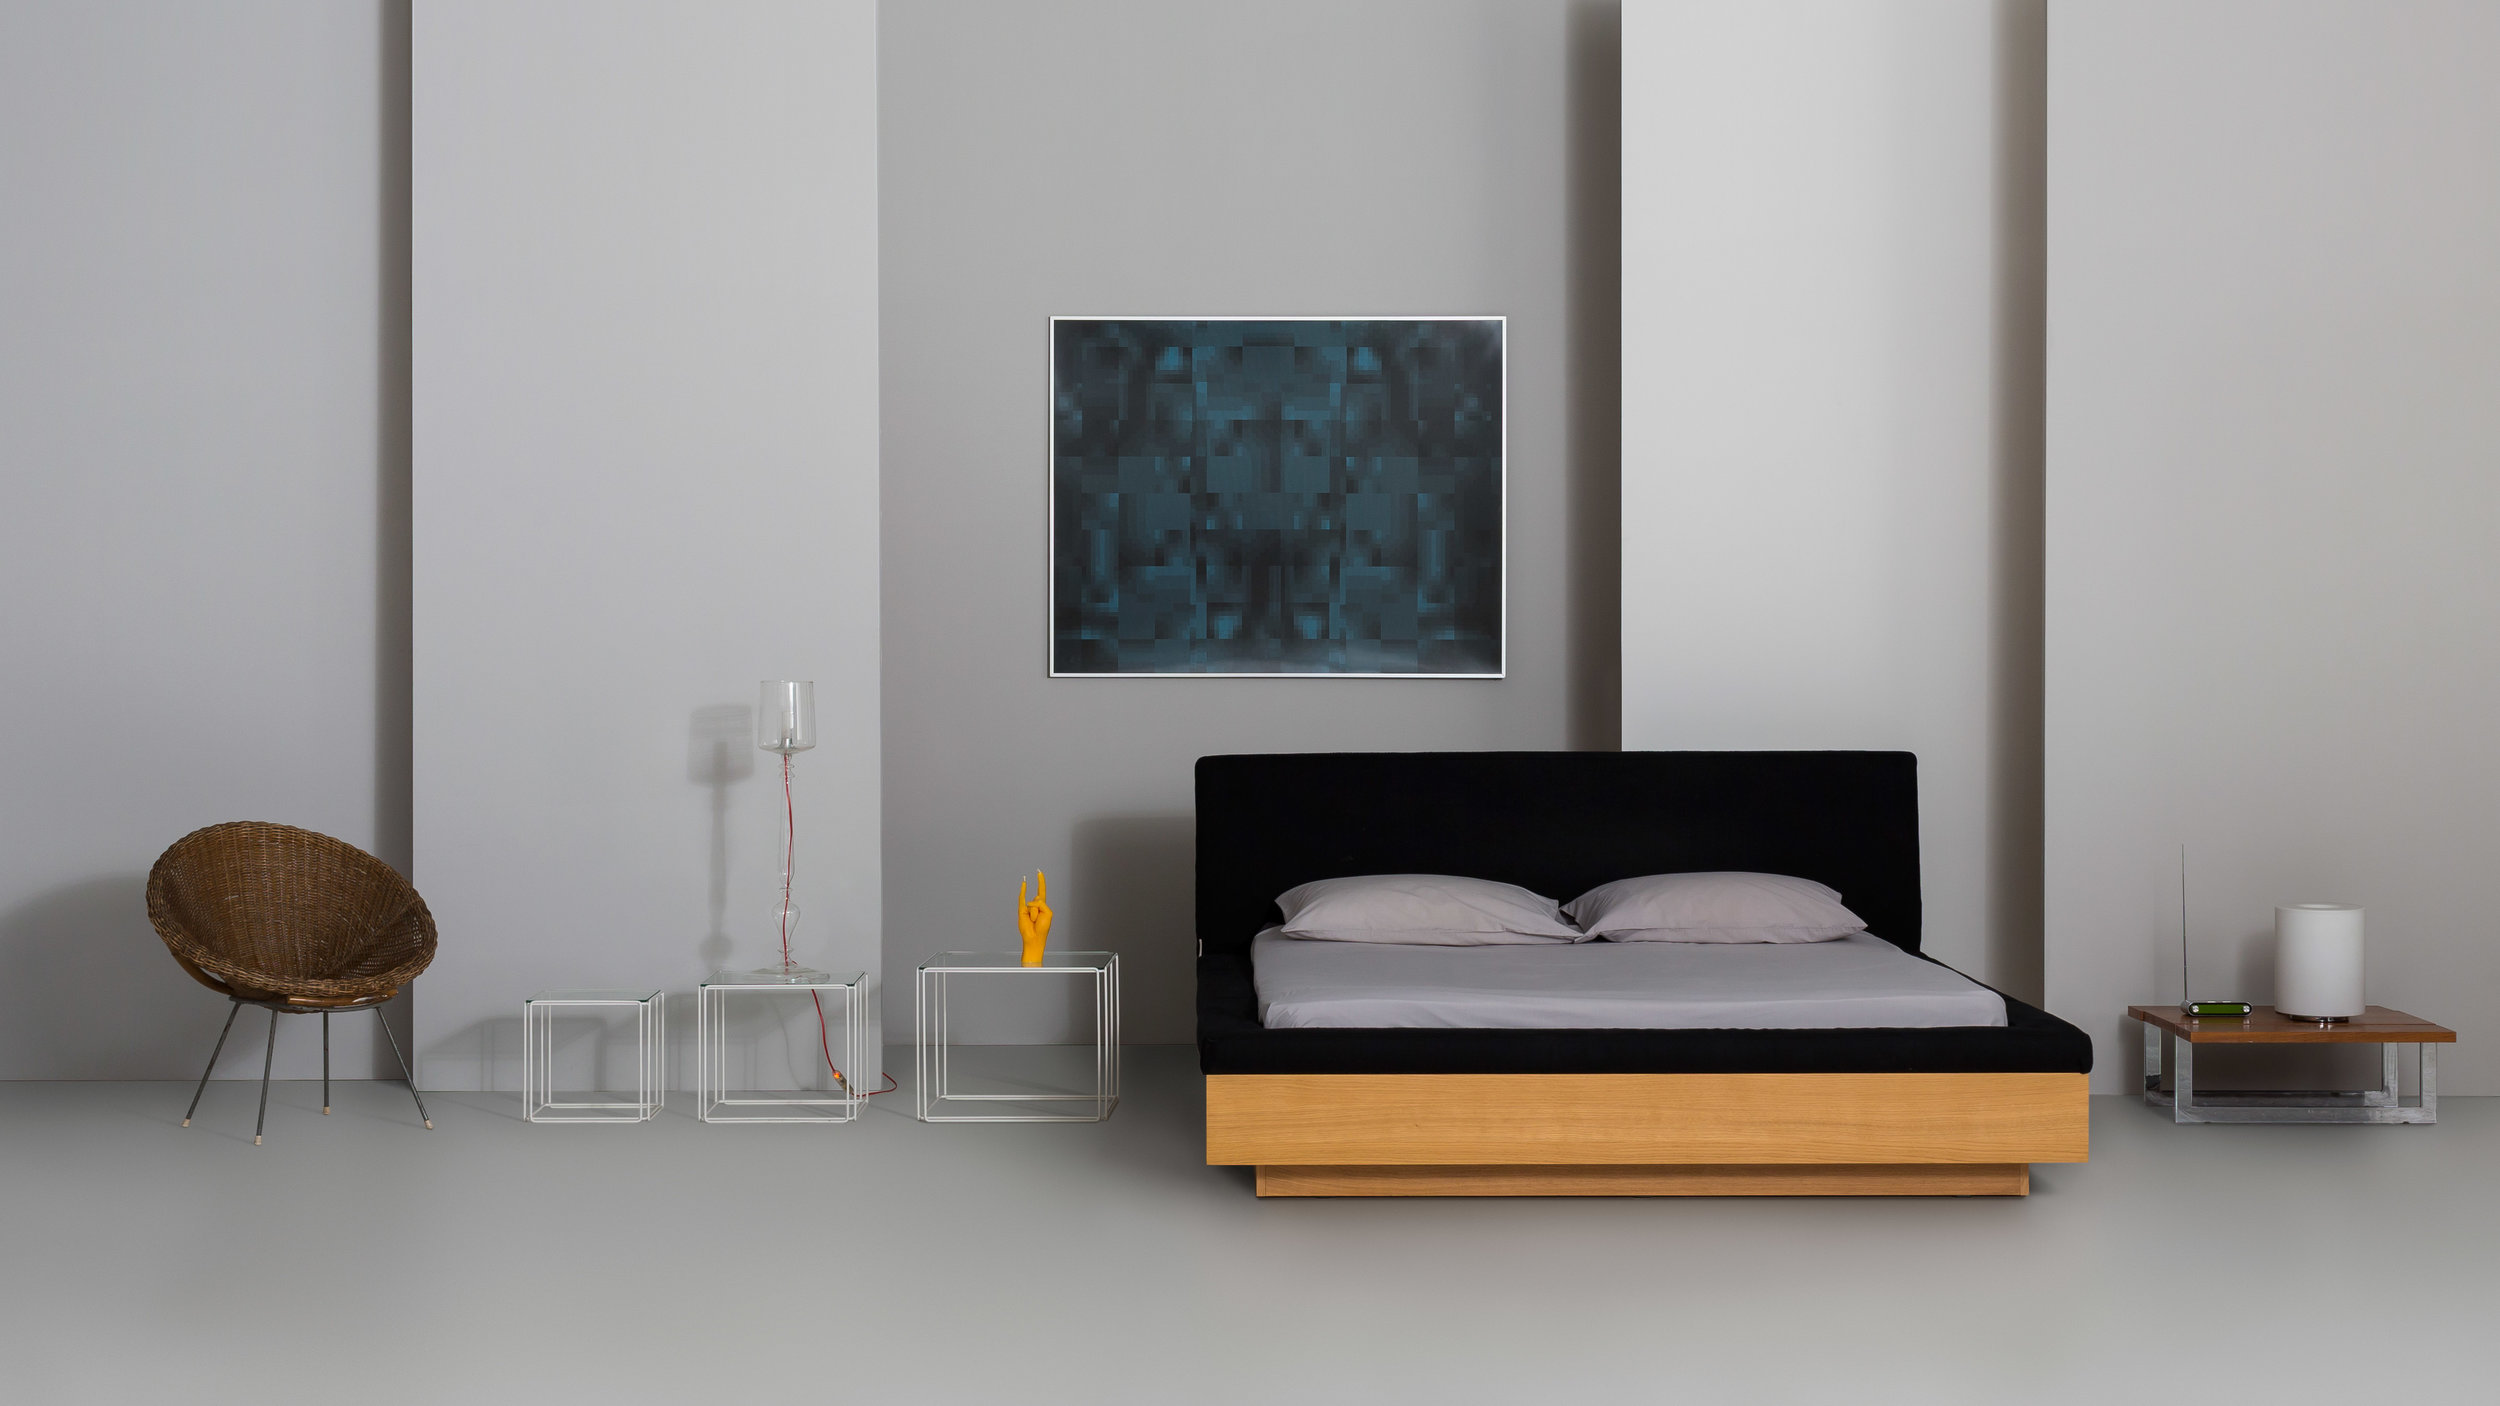 Theo-Williams-Product-Industrial-Design-Interiour.jpg